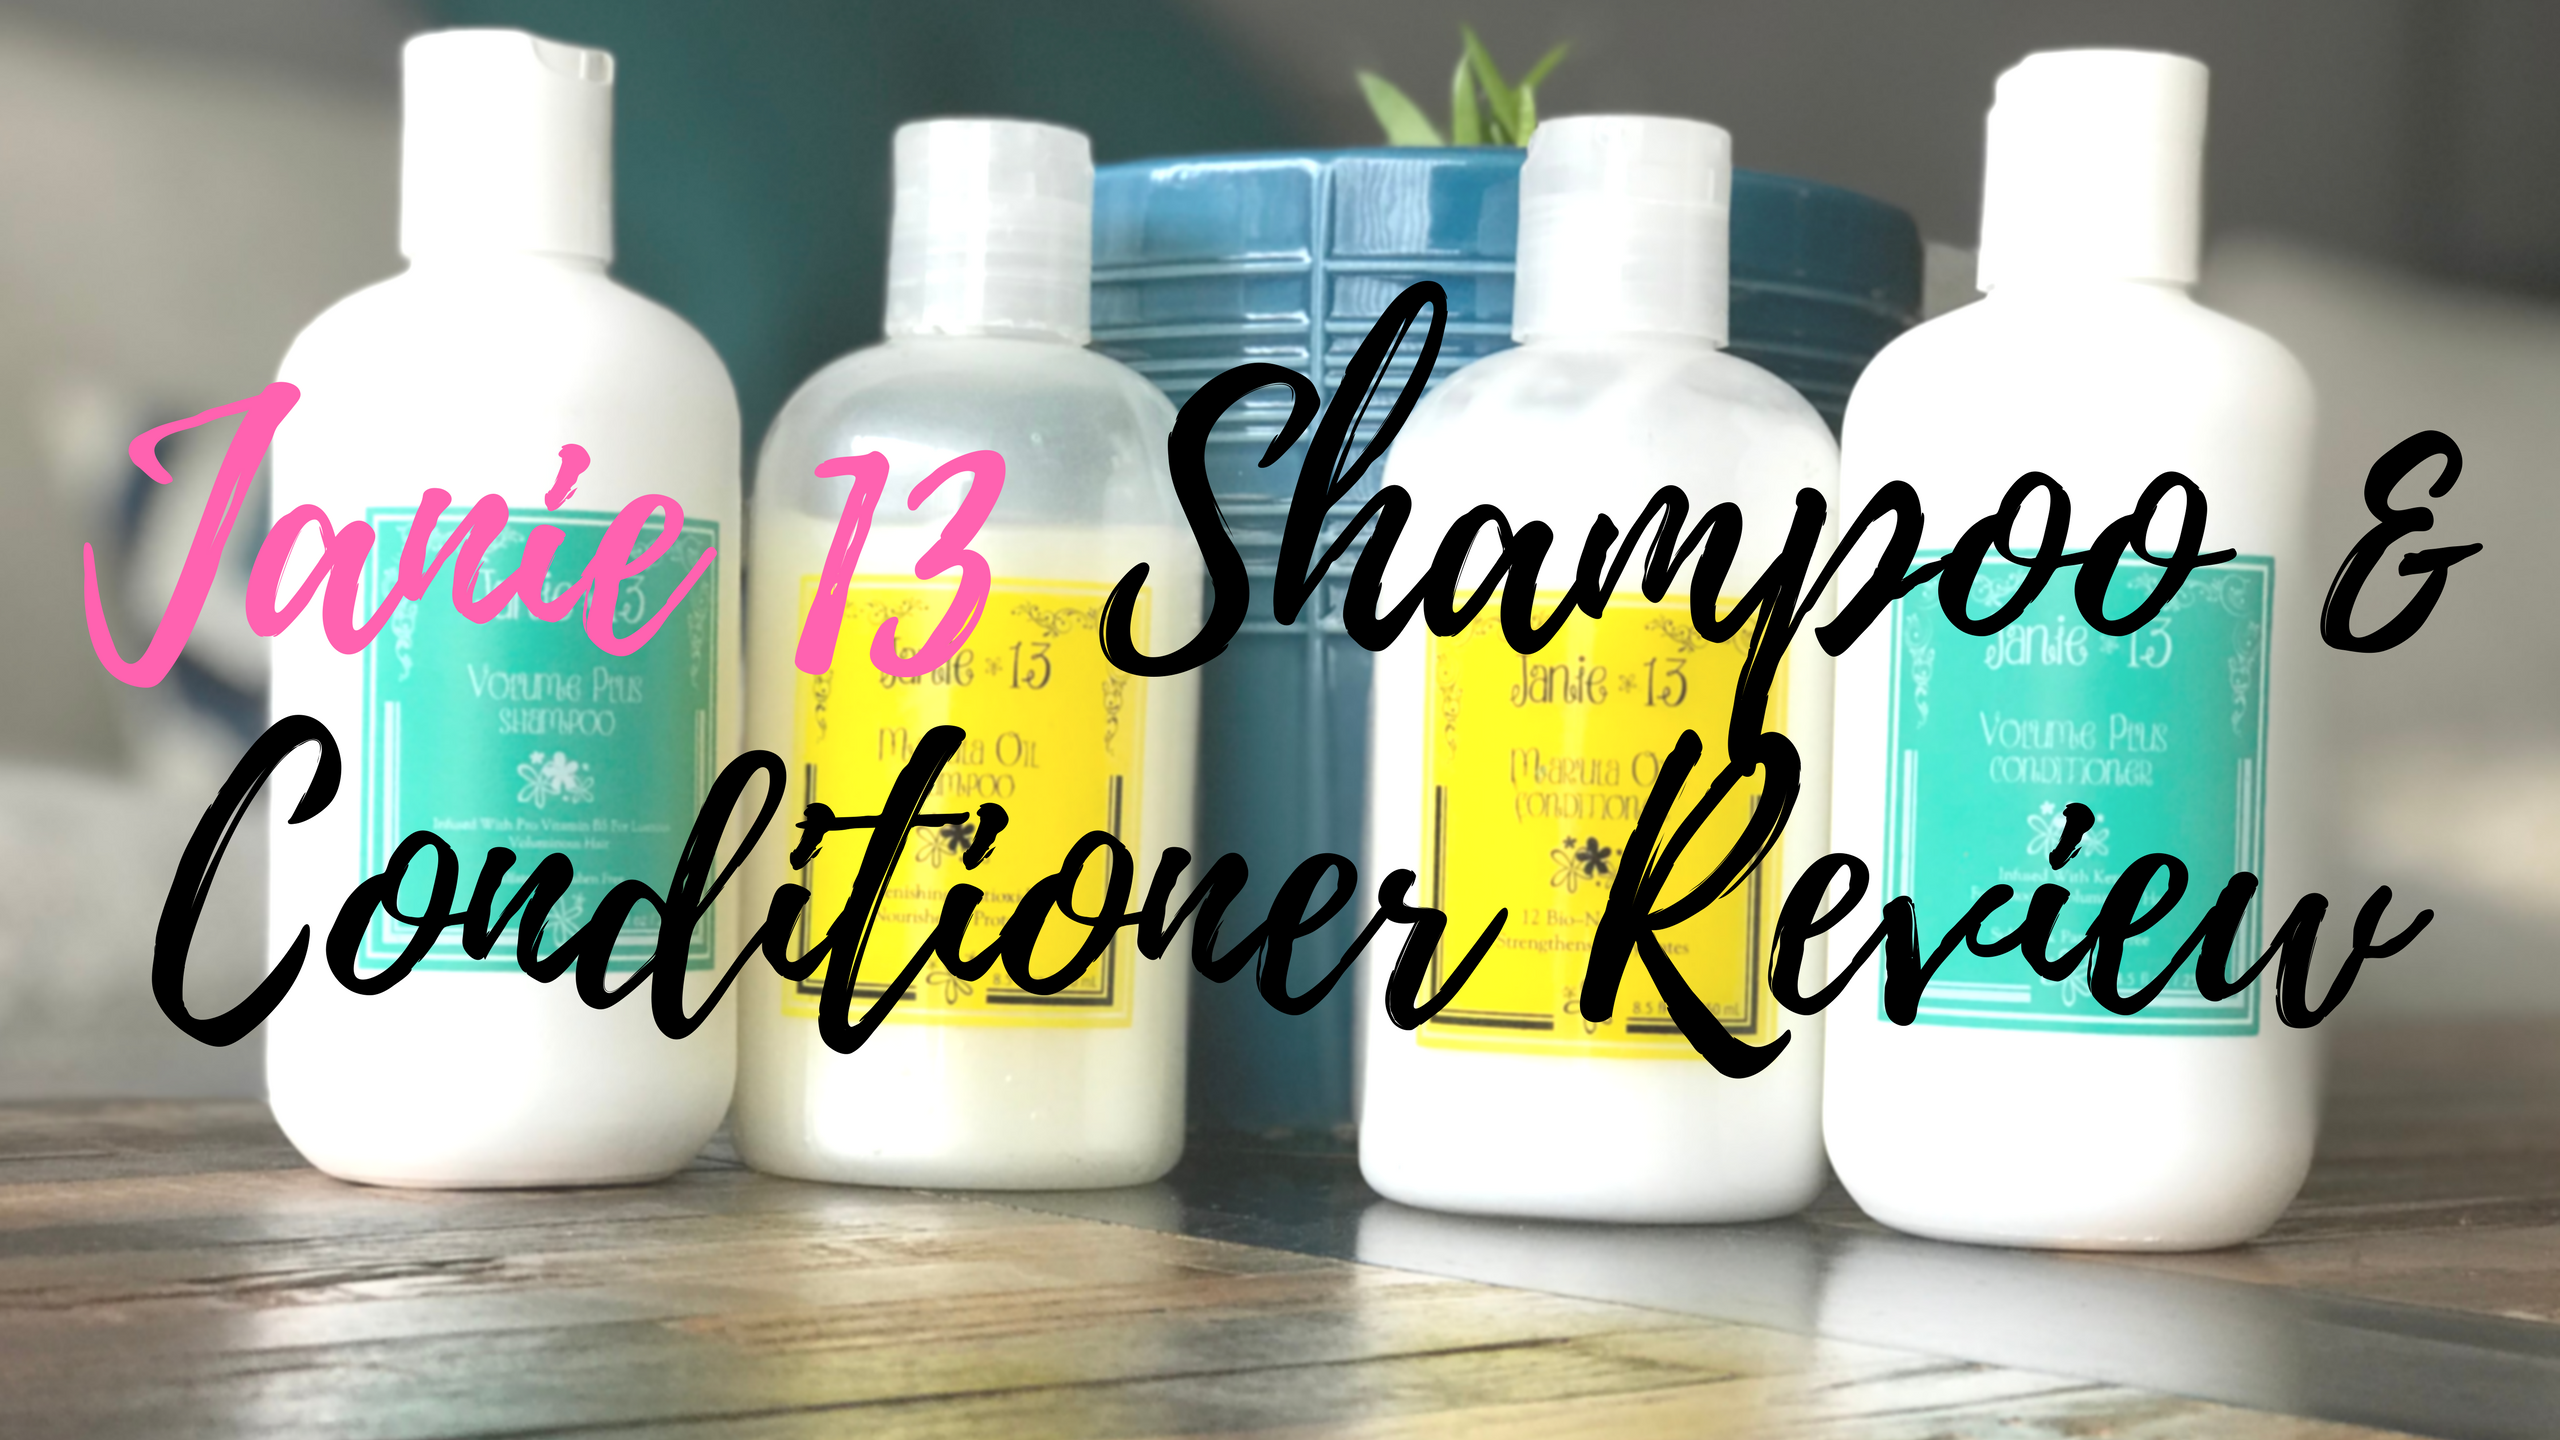 Janie 13 Shampoo And Conditioner Review Get Good Head